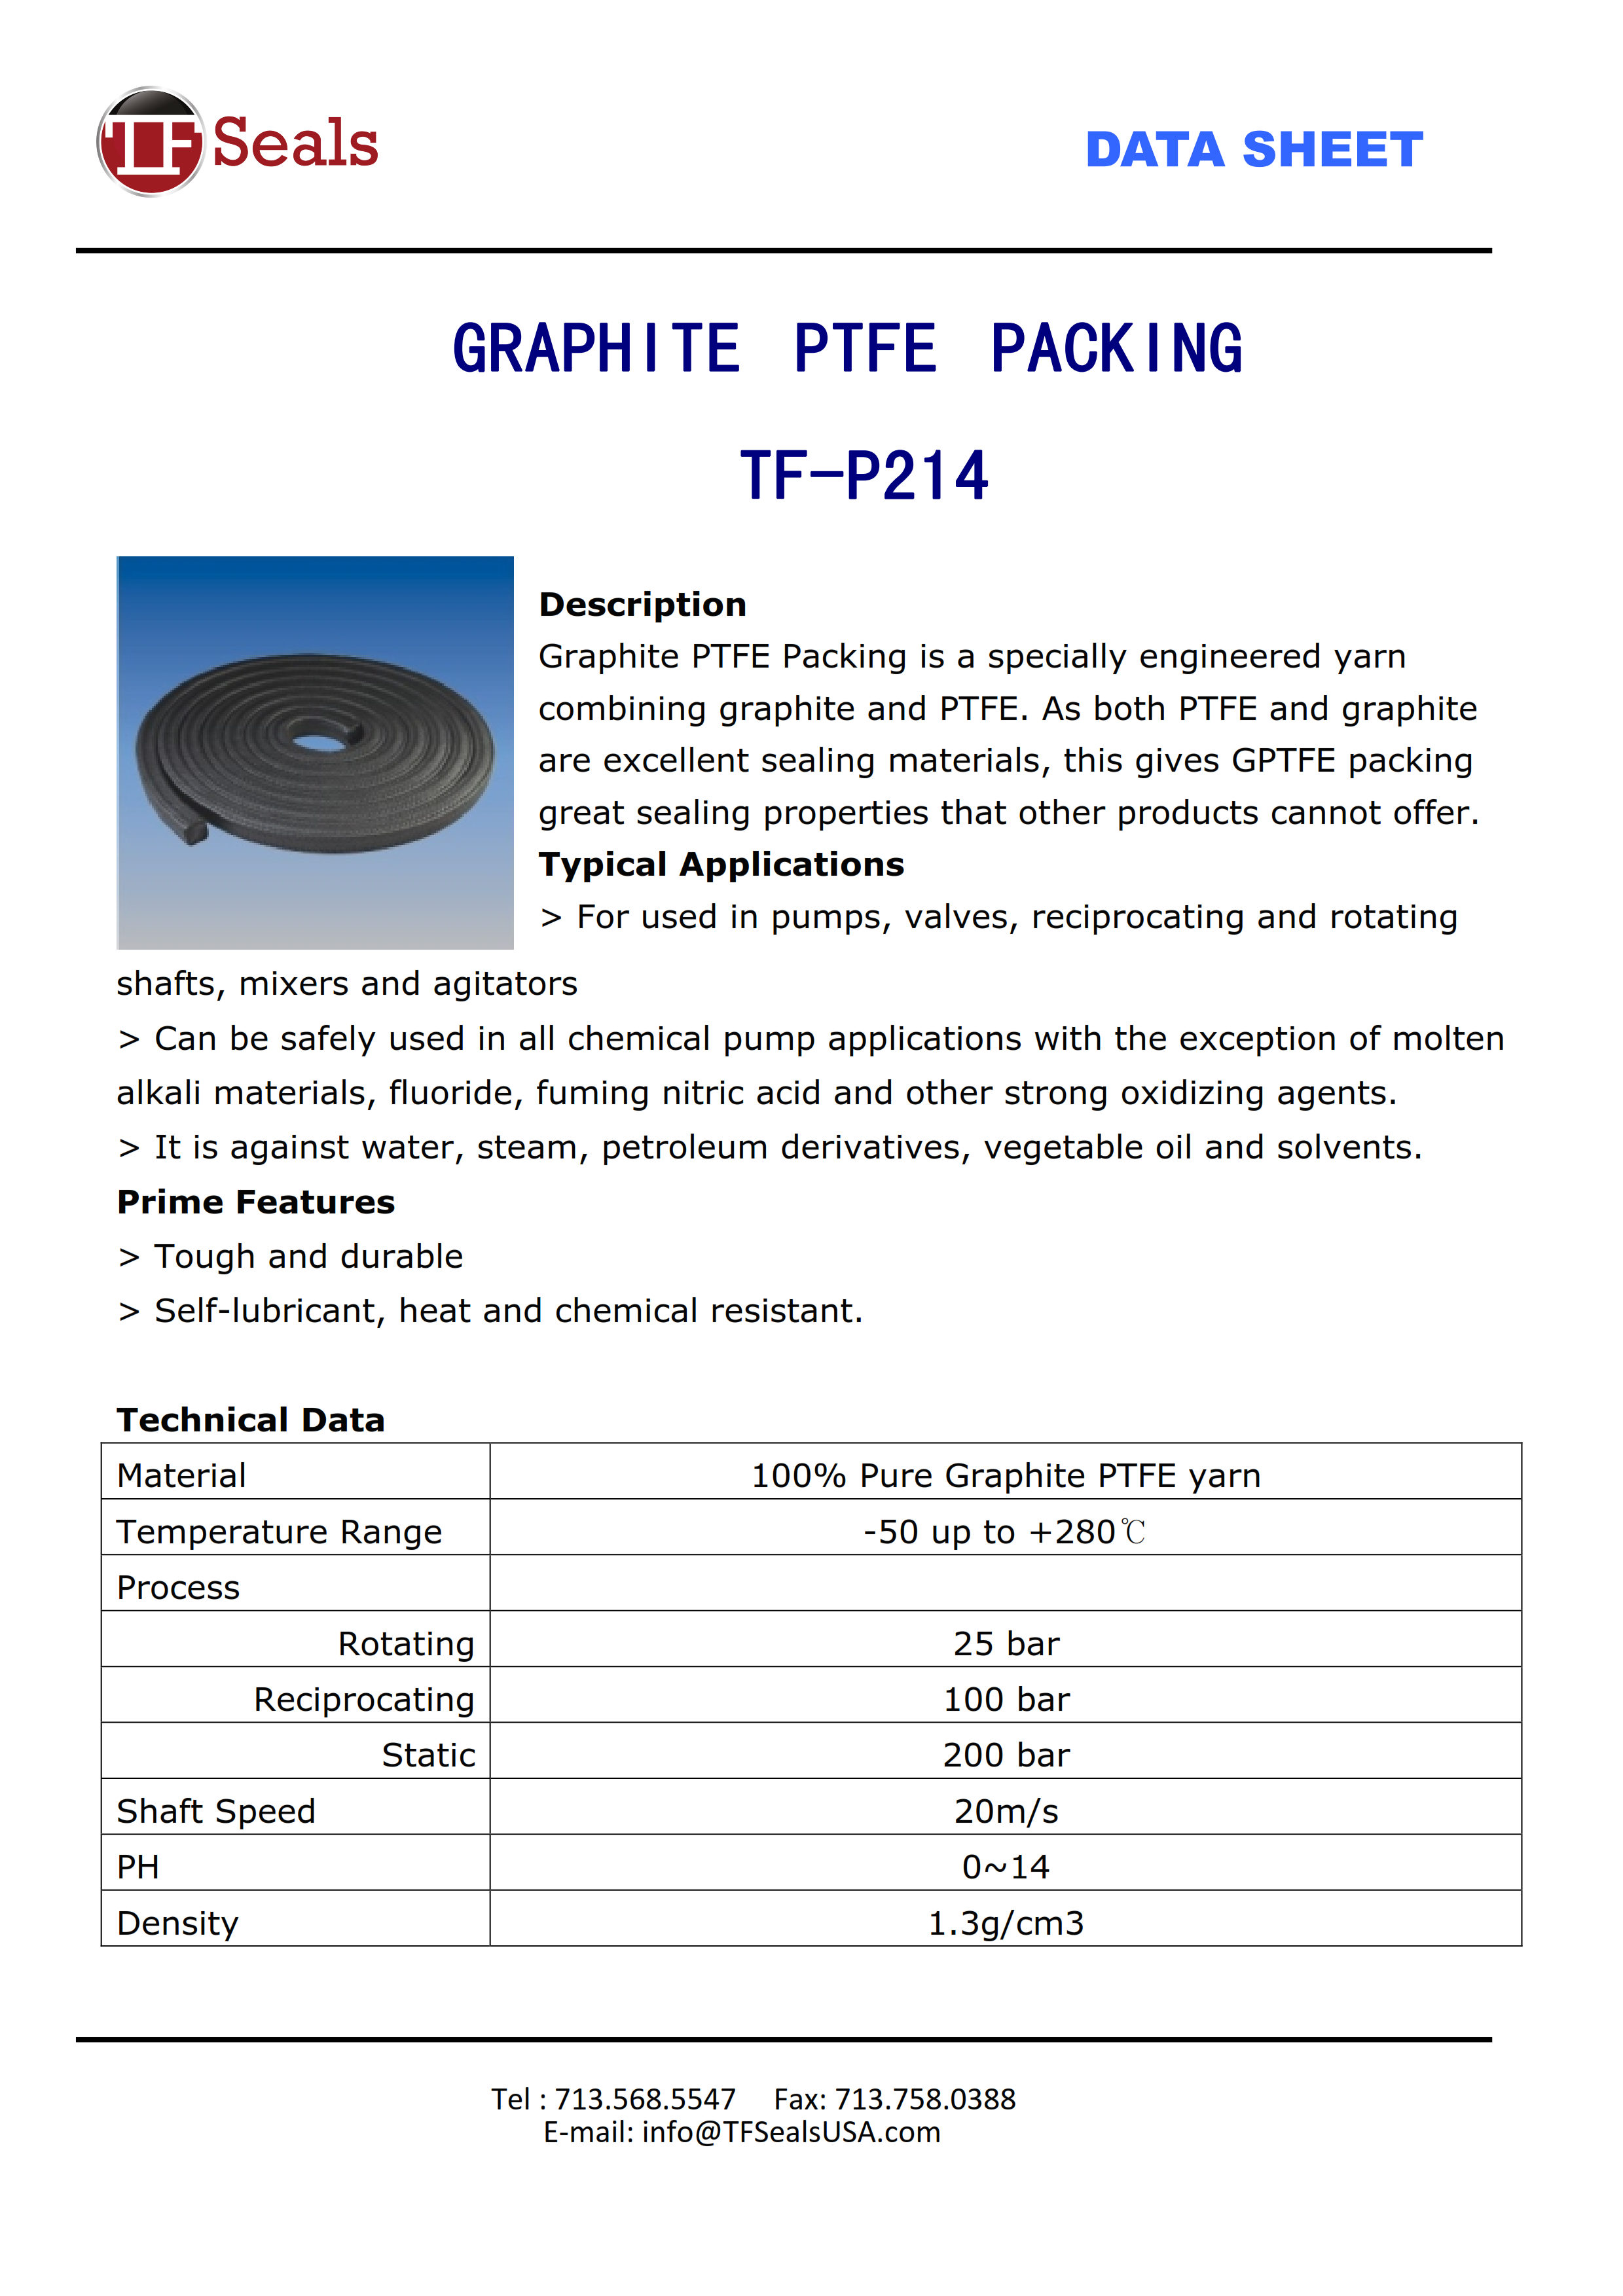 PTFE packing, TF-P211